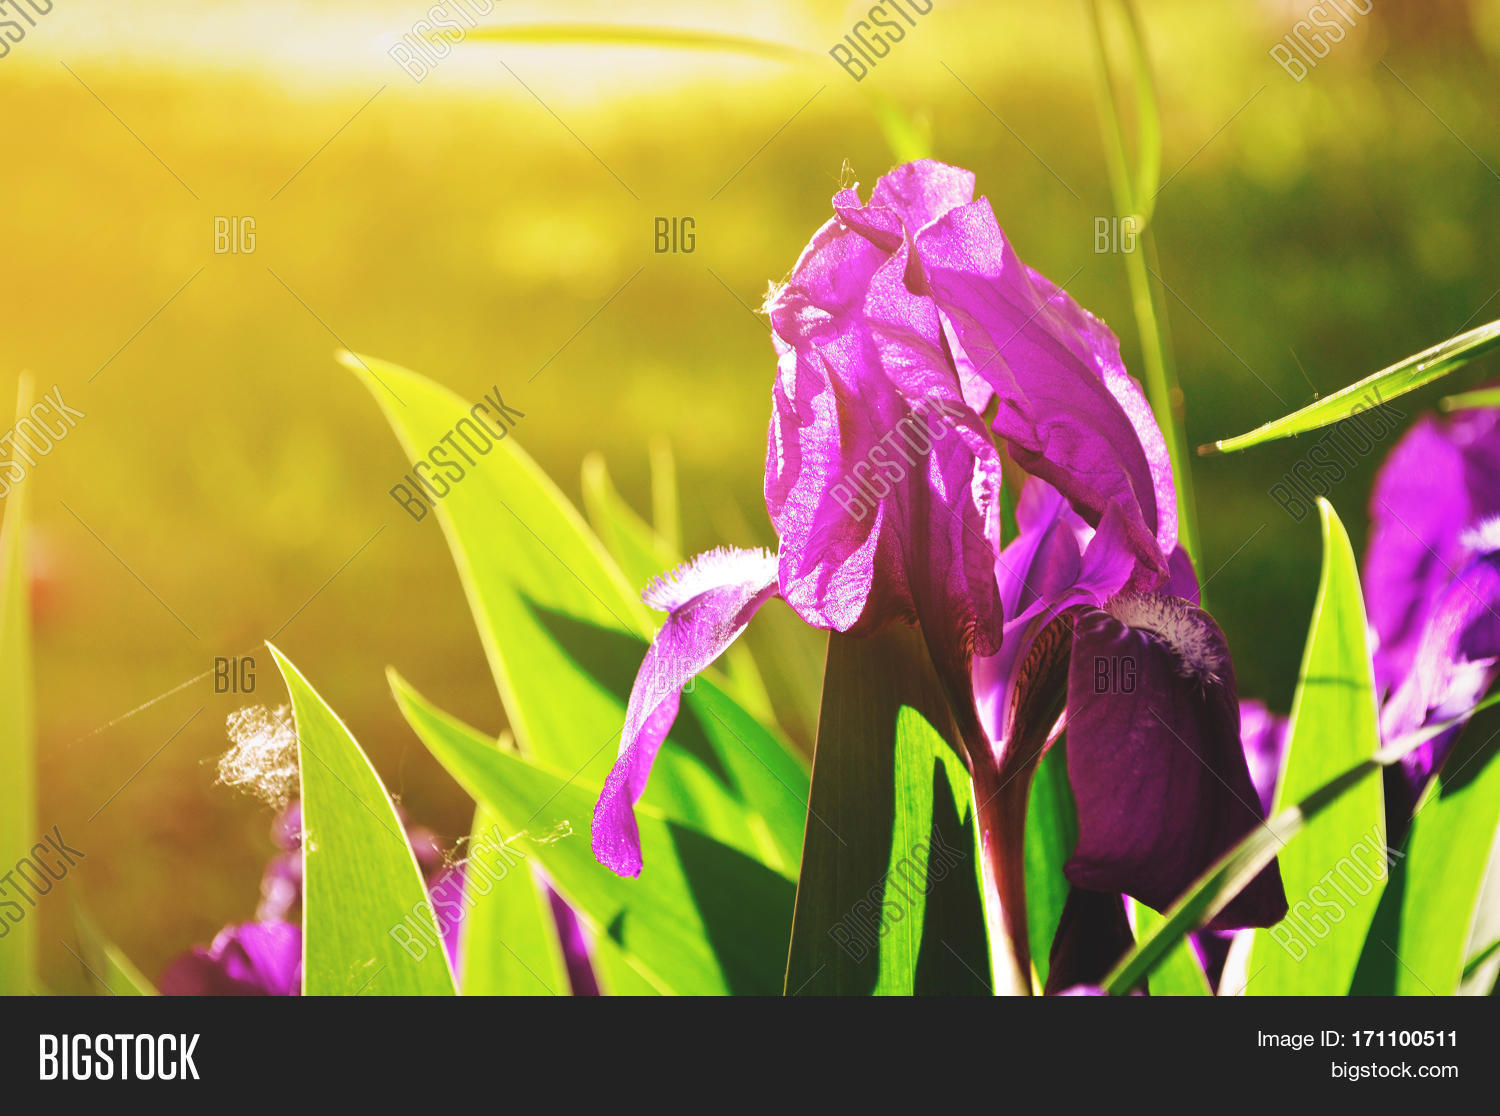 Spring Flower Image Photo Free Trial Bigstock